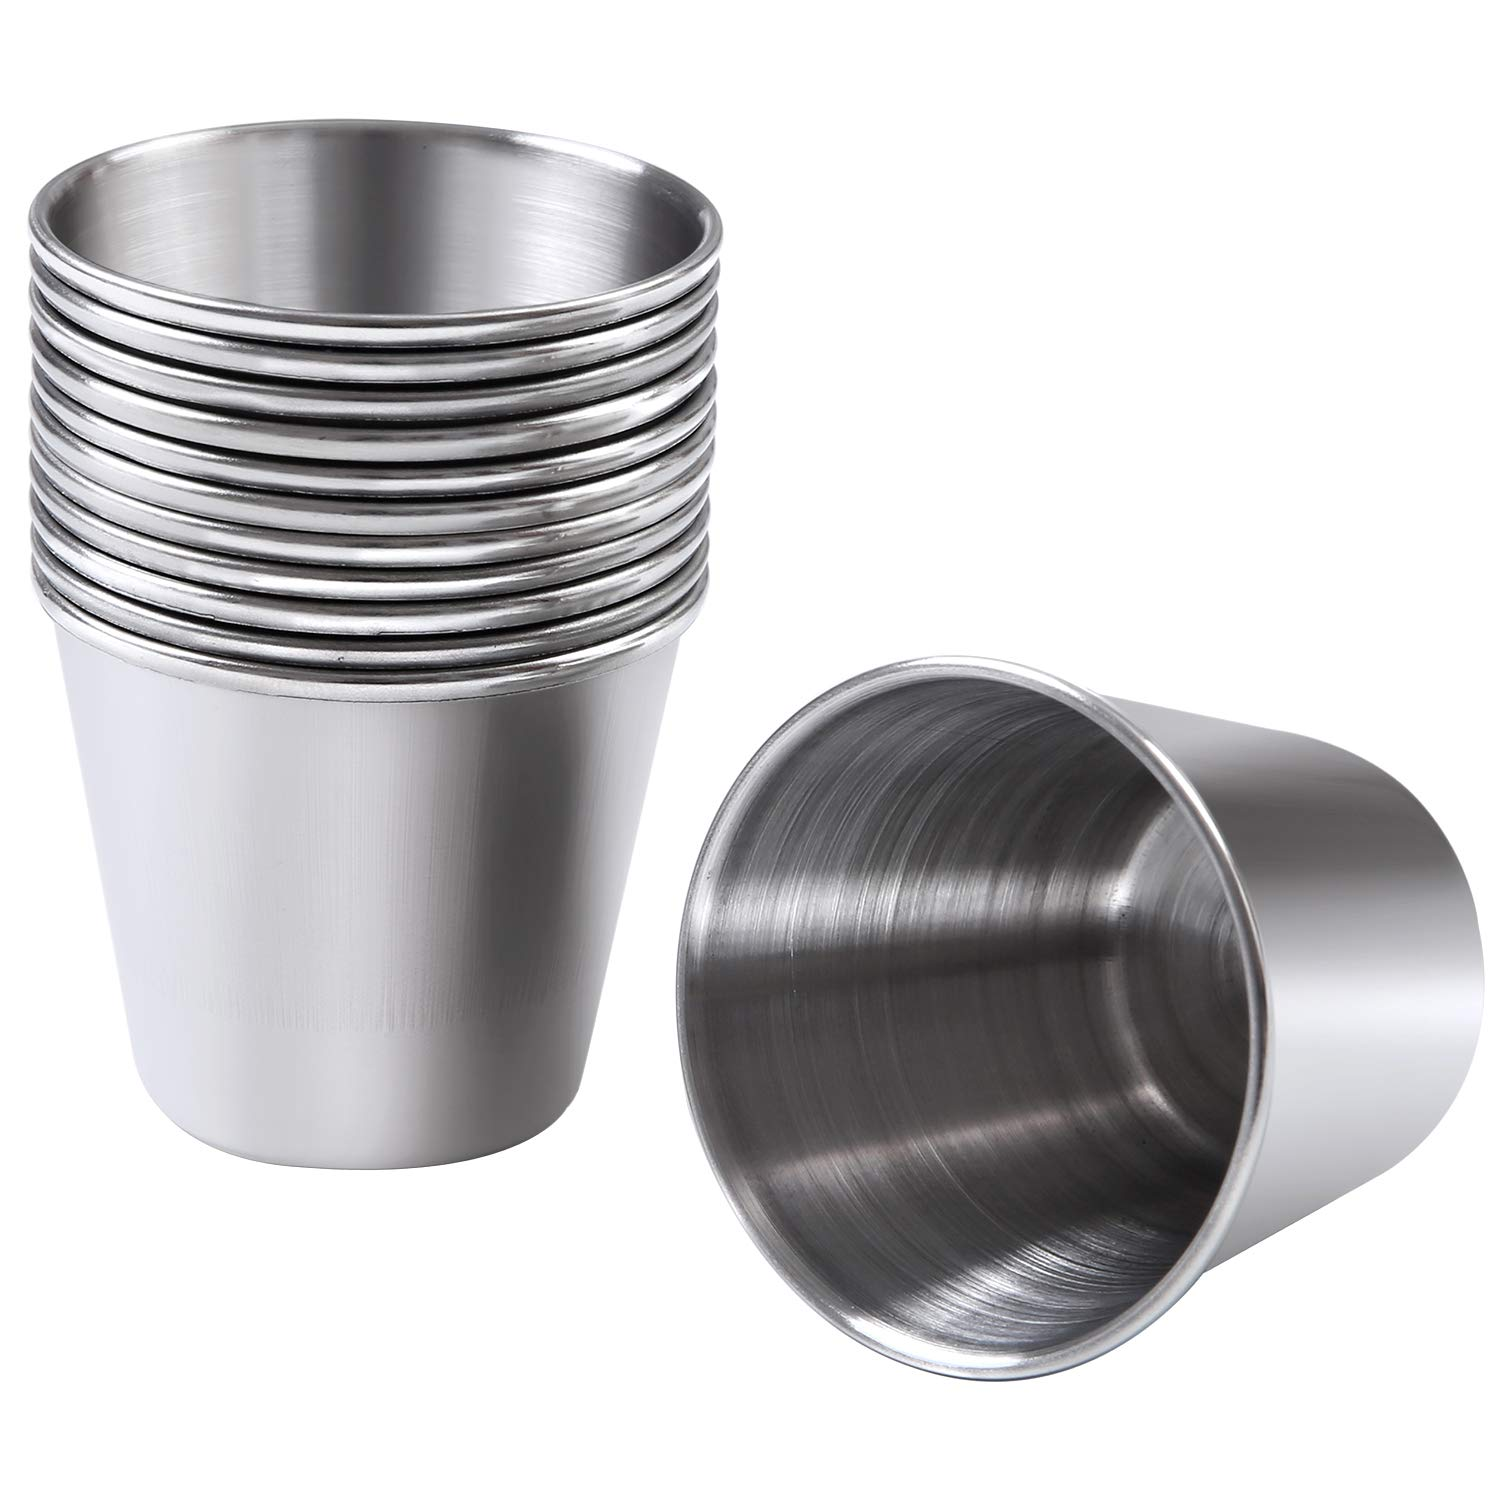 Ruisita 12 Pieces Stainless Steel Shot Cups Stainless Steel Shot Glass Drinking Tumbler (1.5 Ounce)